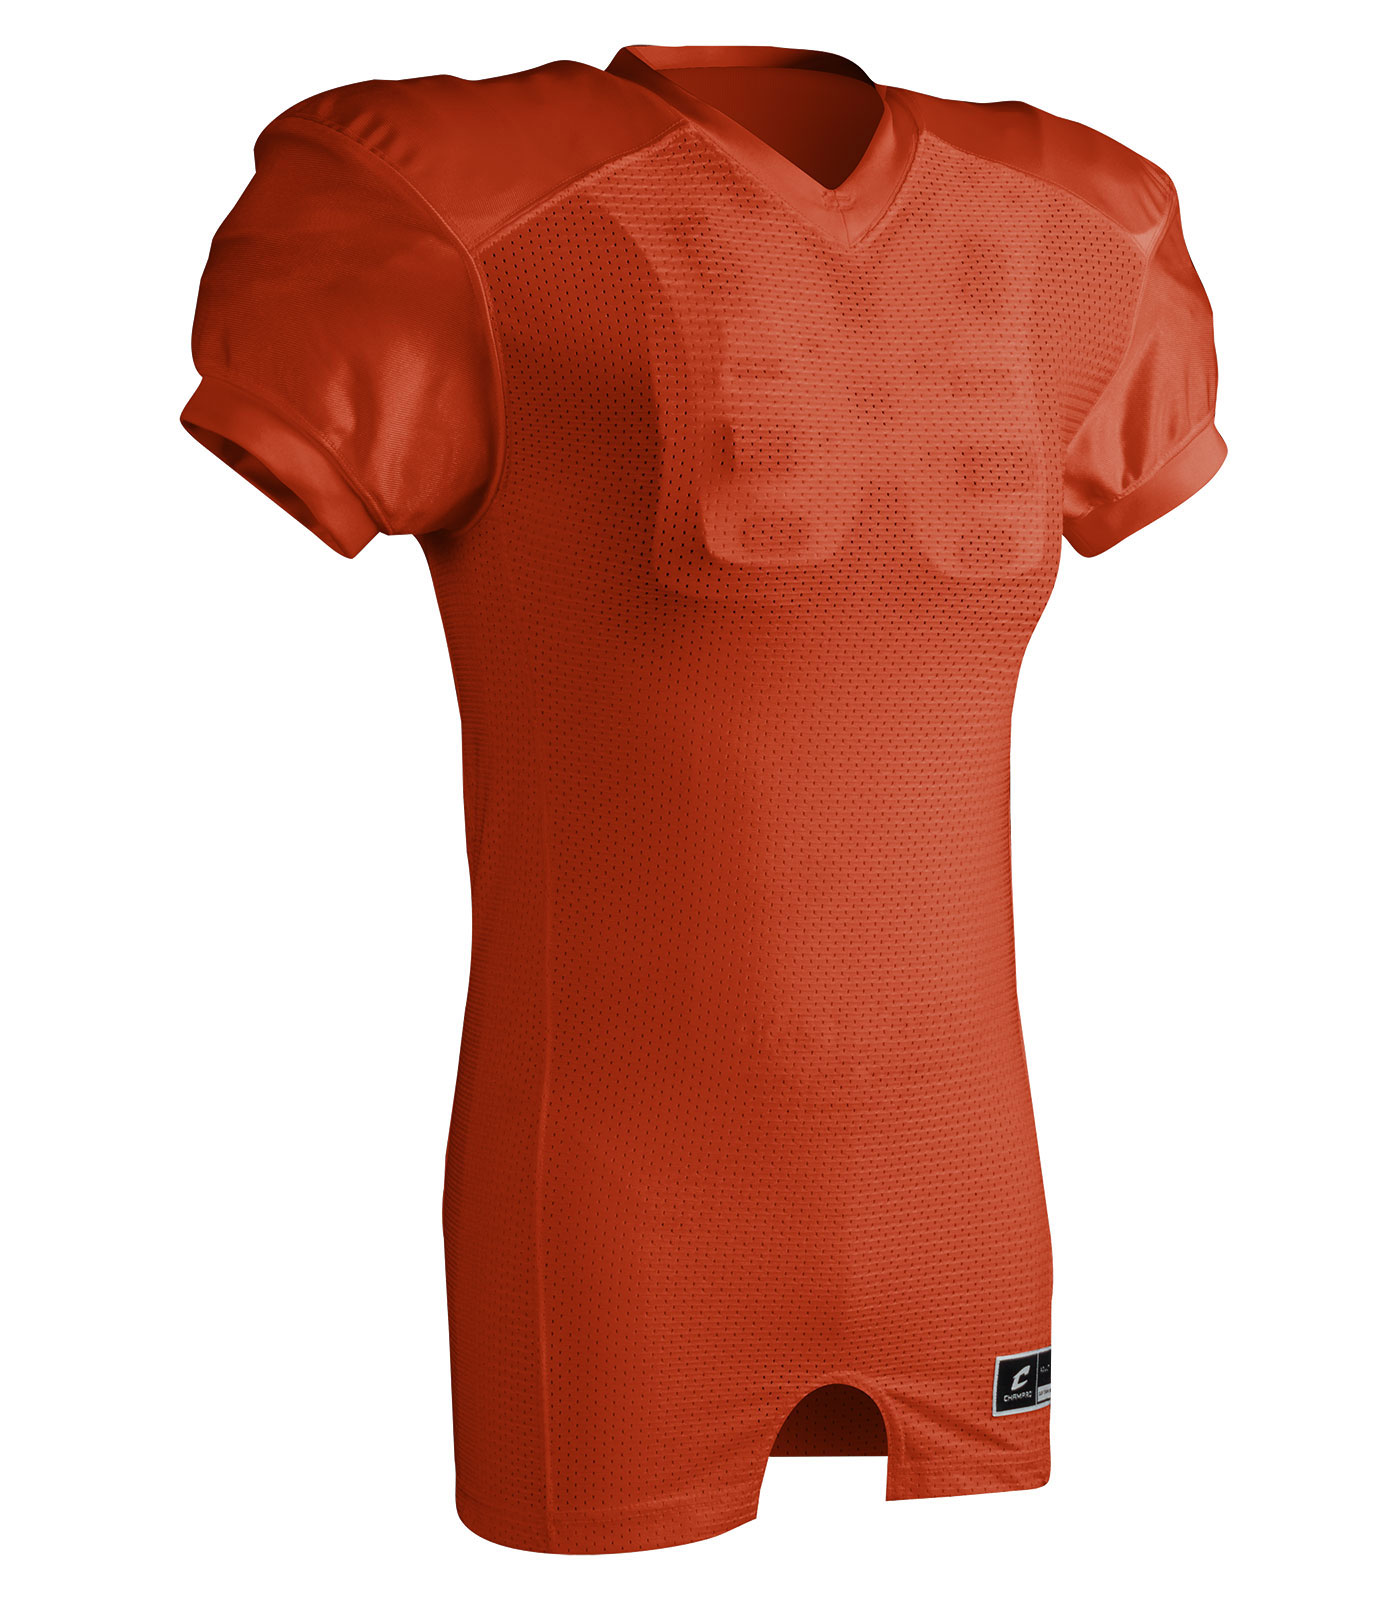 Red Dog Collegiate Fit Adult Football Jersey